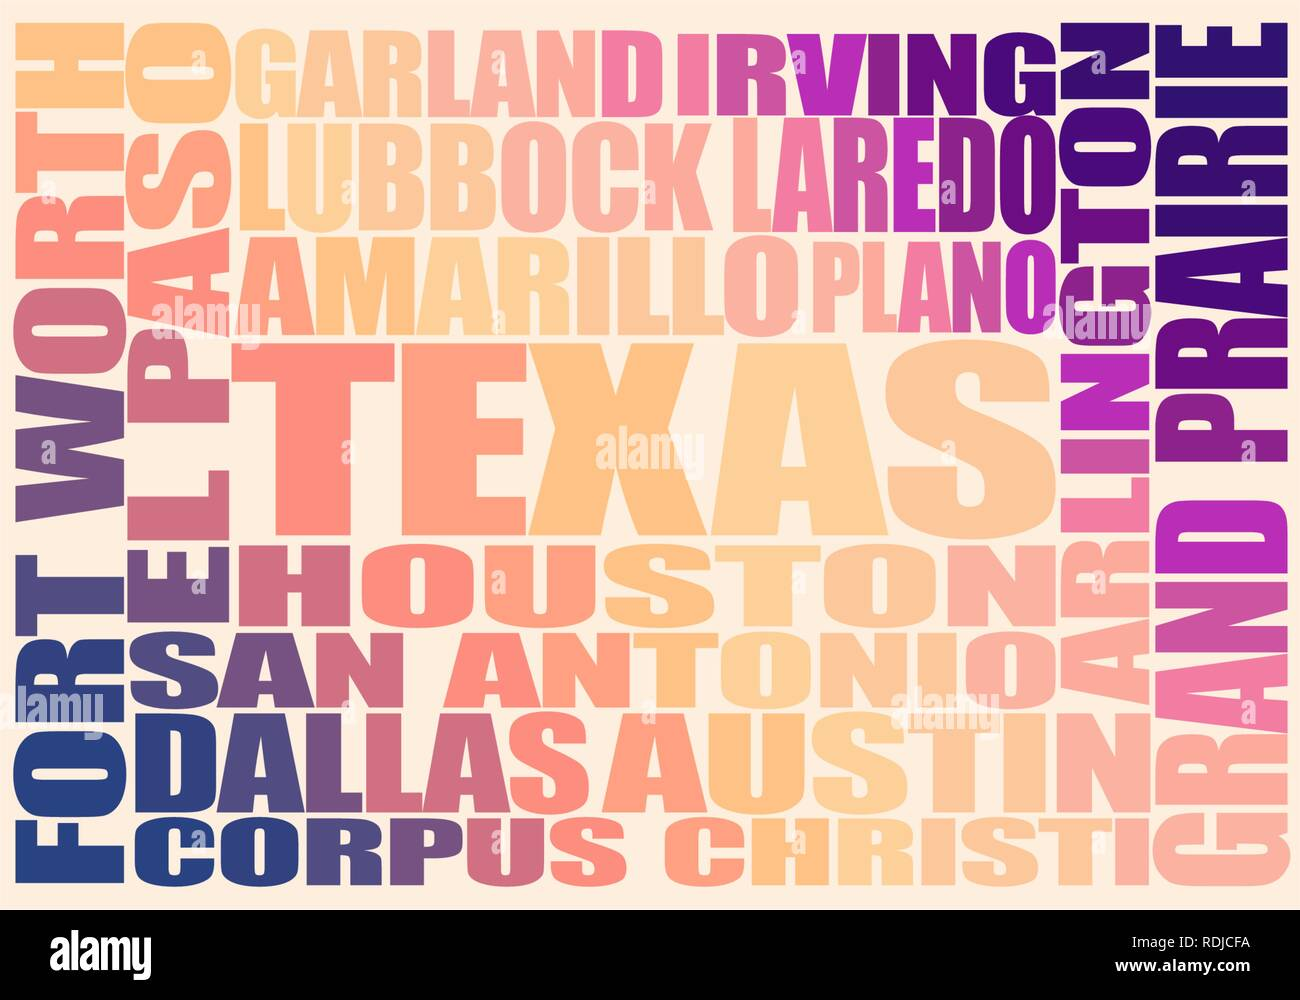 Texas state cities list - Stock Vector